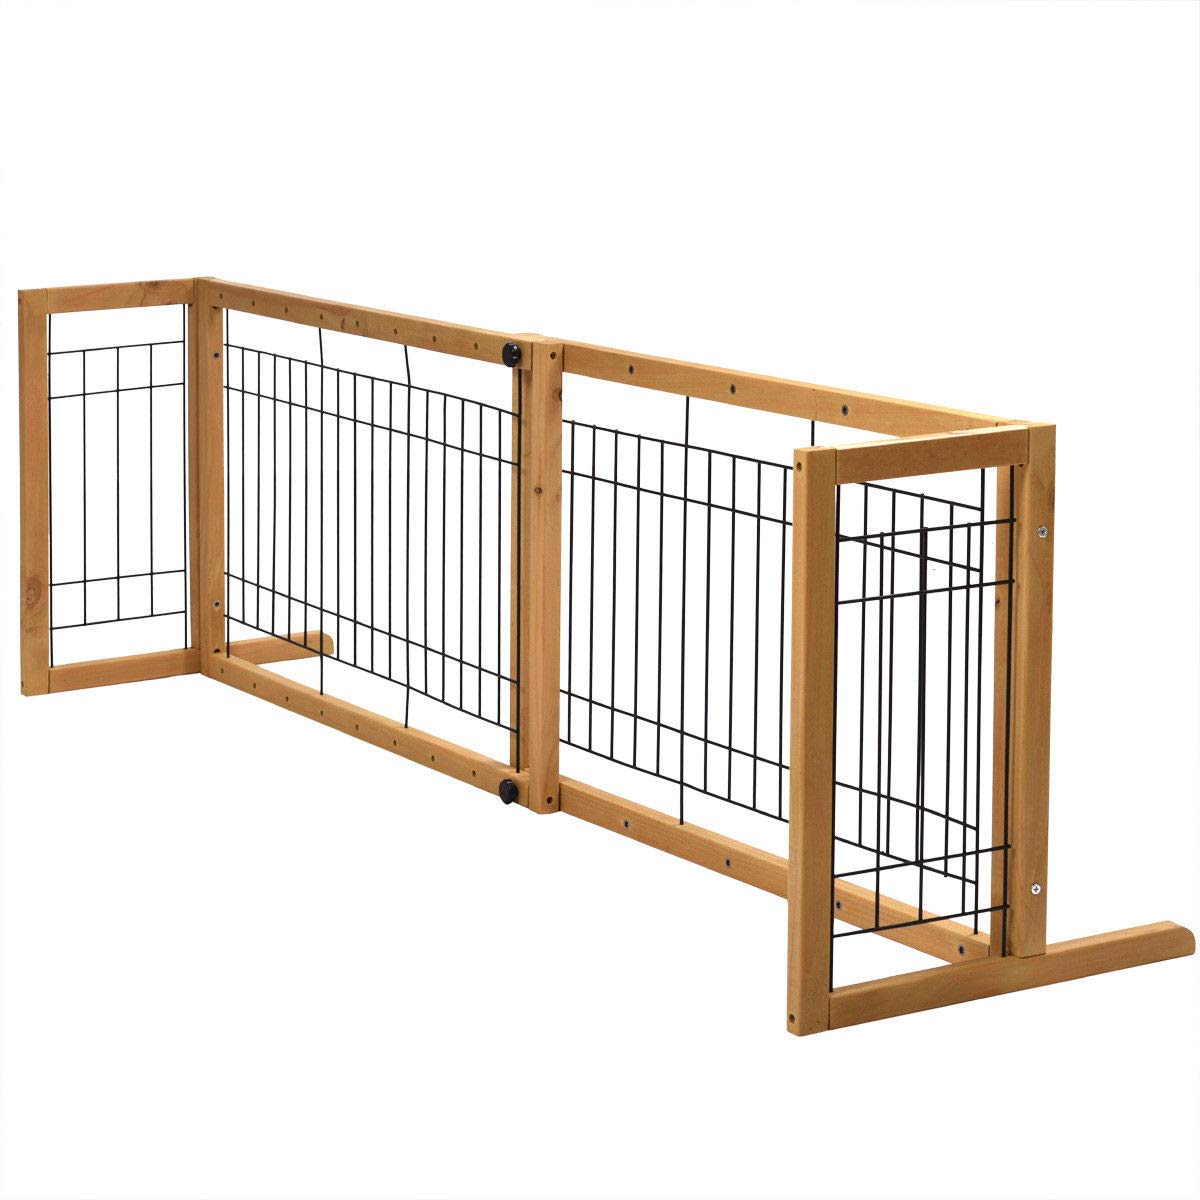 Lapha' Pig Fence Gate Expansion Standing Adjustable Pet Dog Gate Indoor Solid Wood Construction Puerta cerca